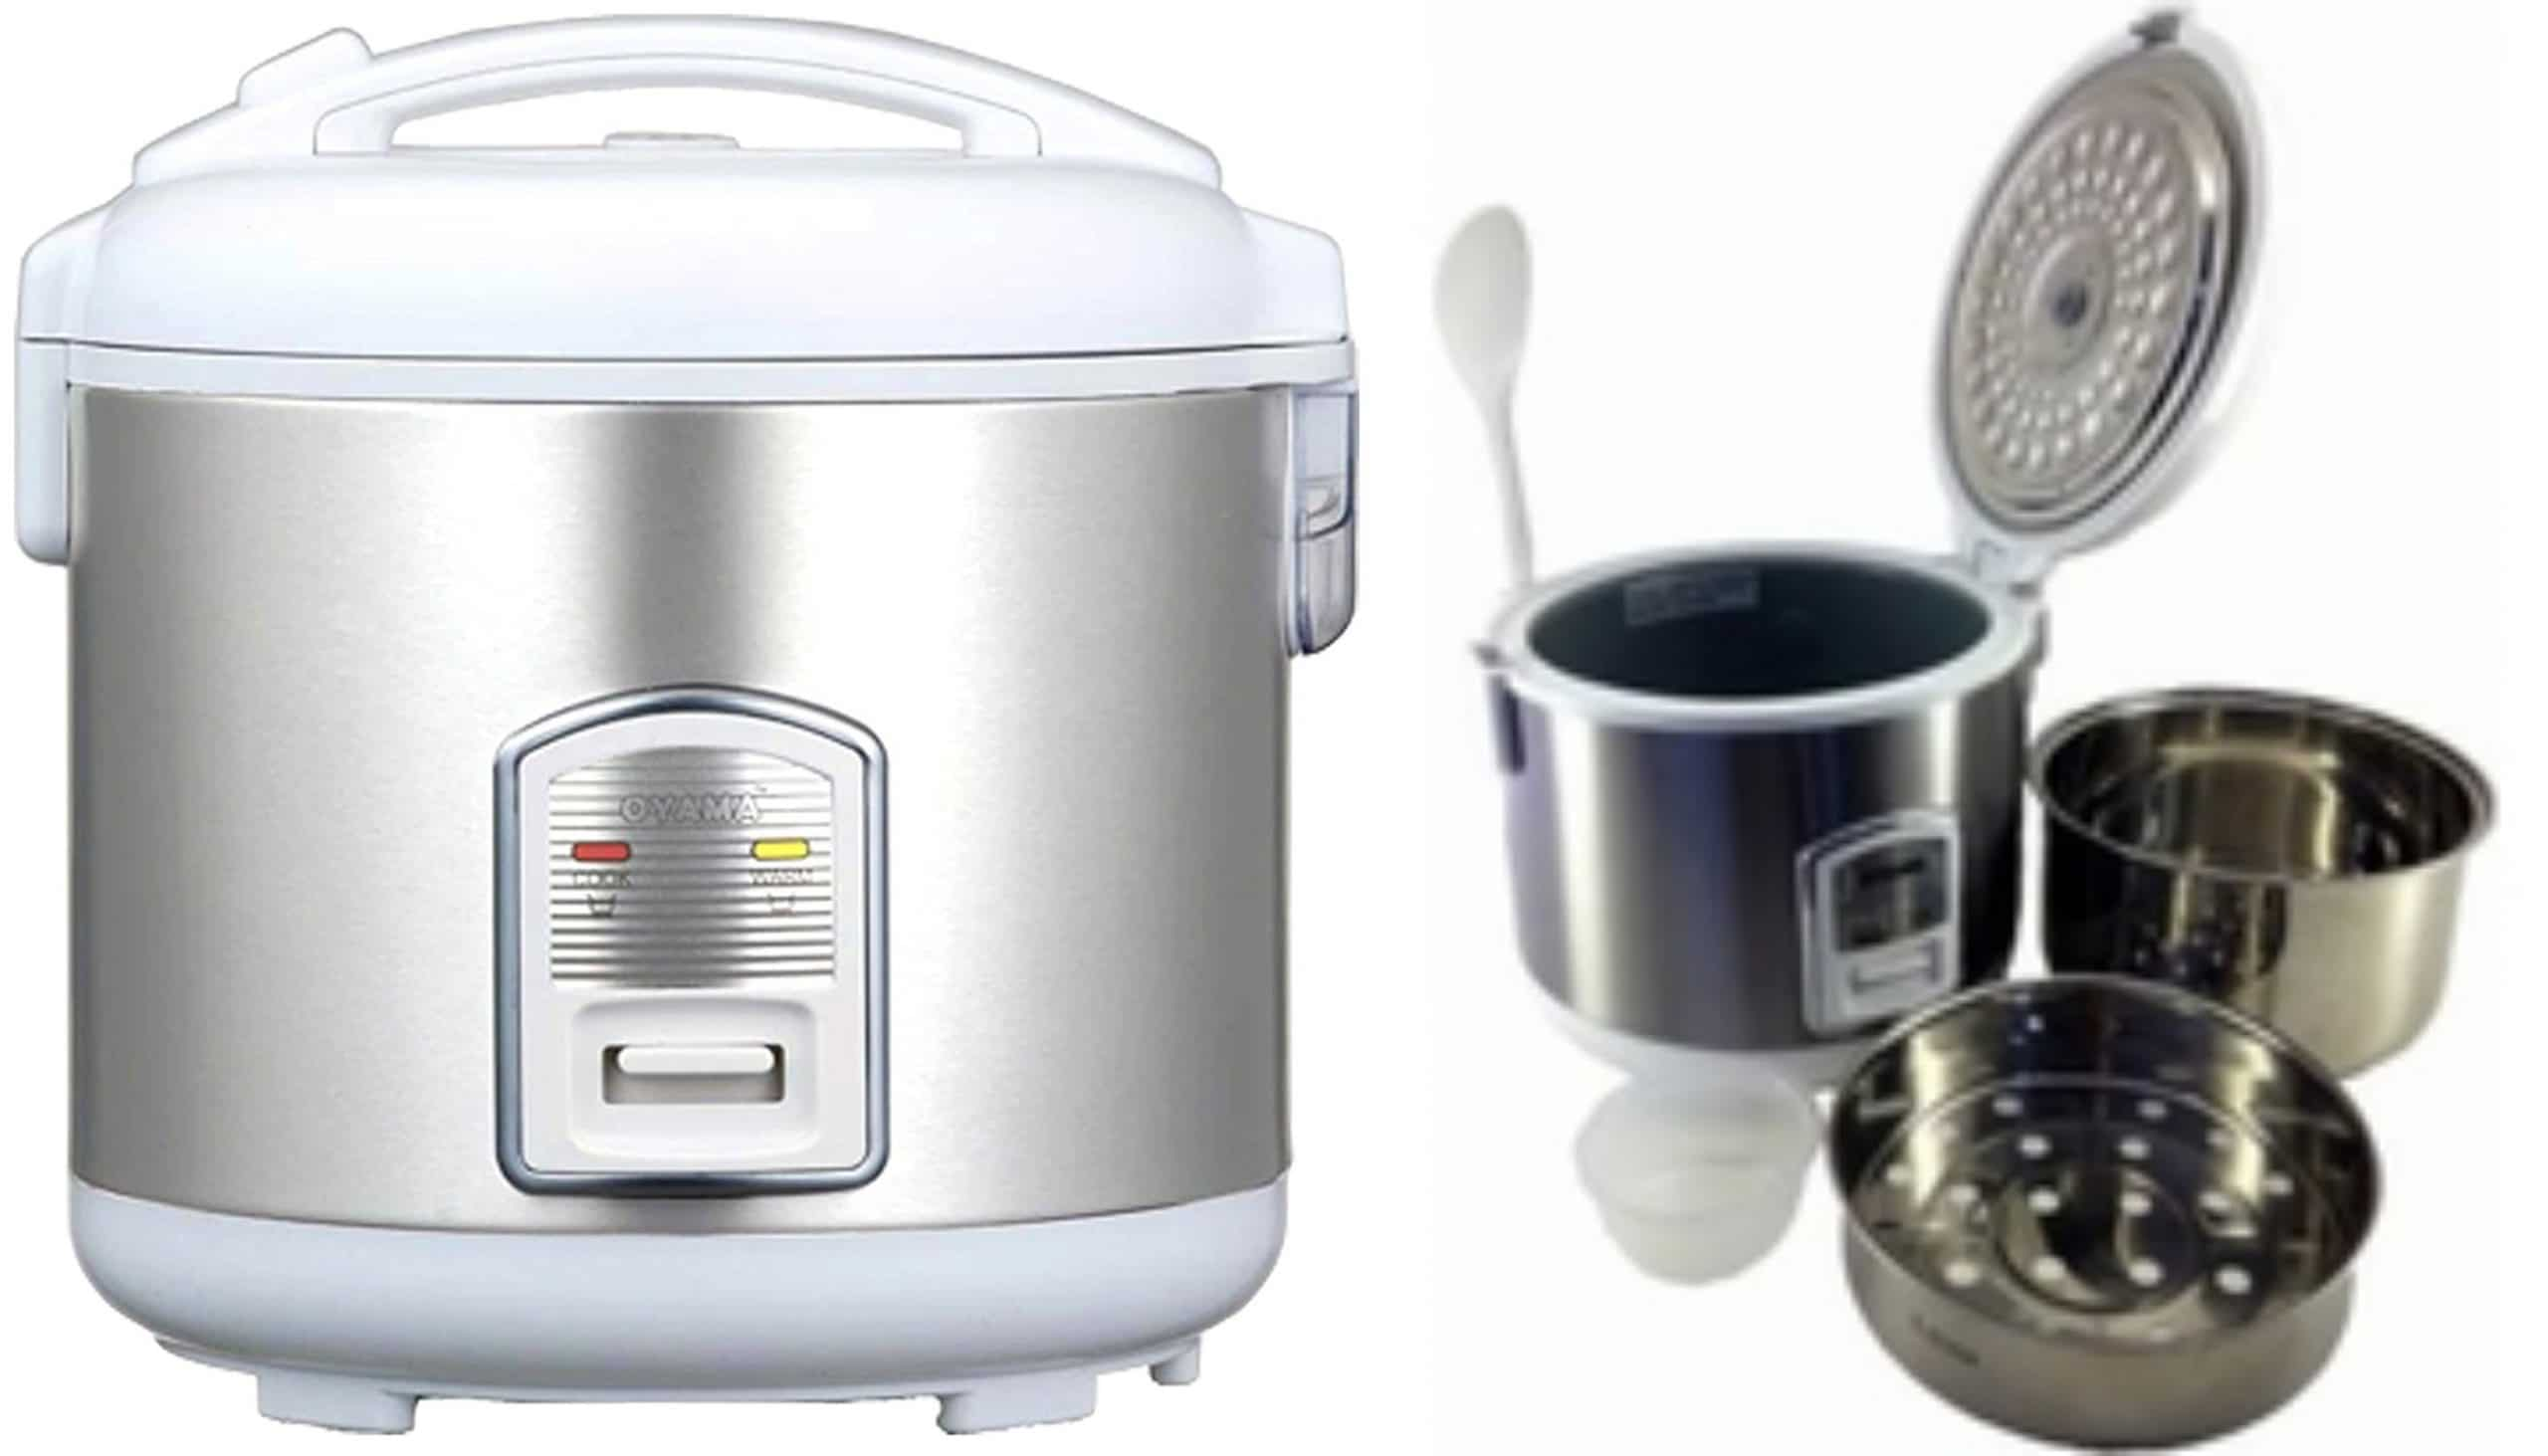 cuisinart rice cooker instructions images form 1040 instructions Euro-Pro Manual Slow Cooker Euro-Pro Manual Slow Cooker